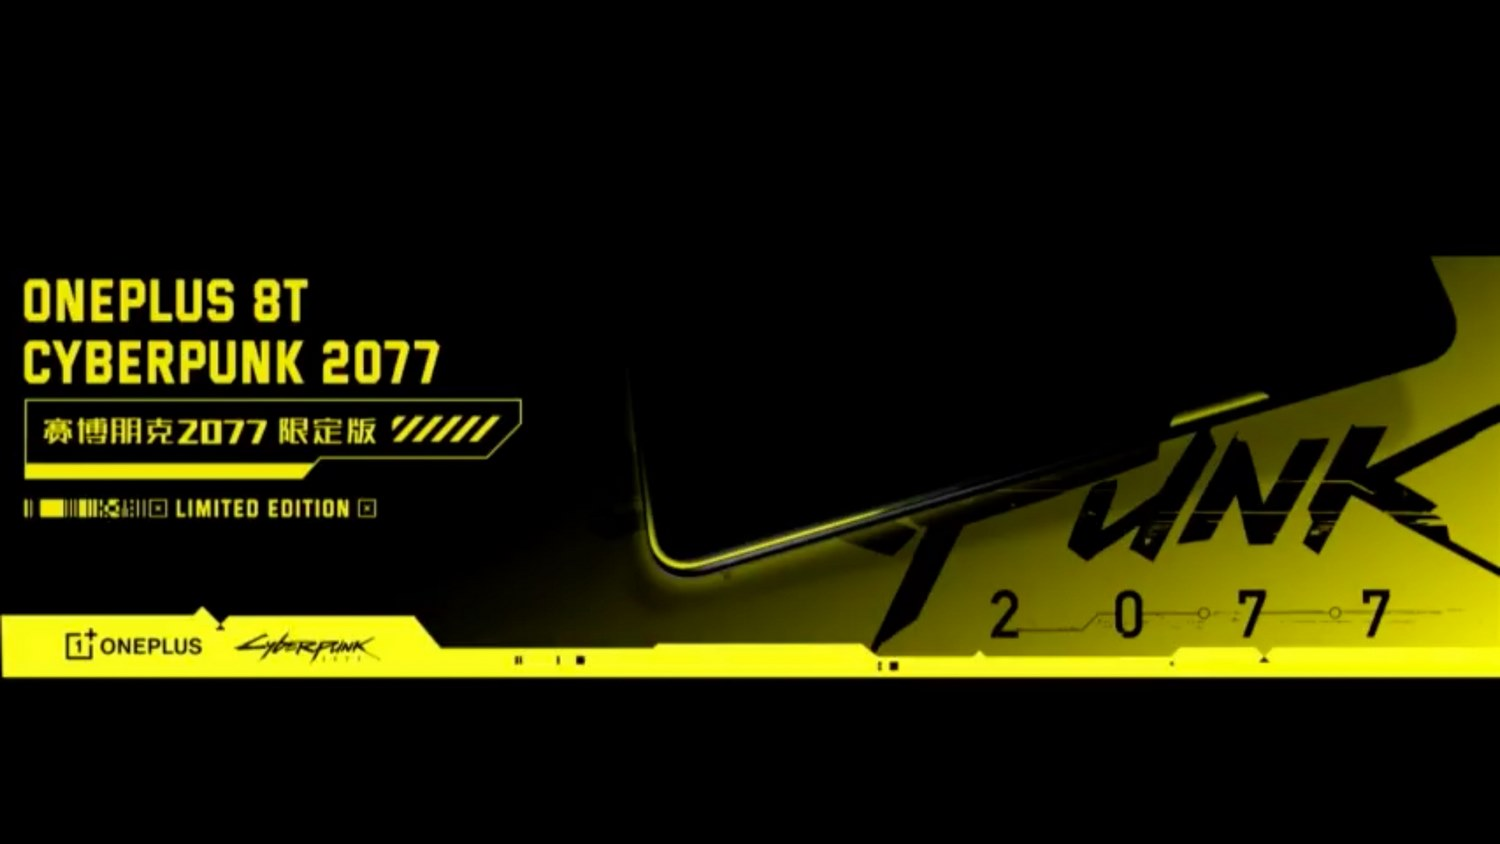 ONEPLUS 8T Cyberpunk 2077 LIMITED EDITION MAIN BANNER